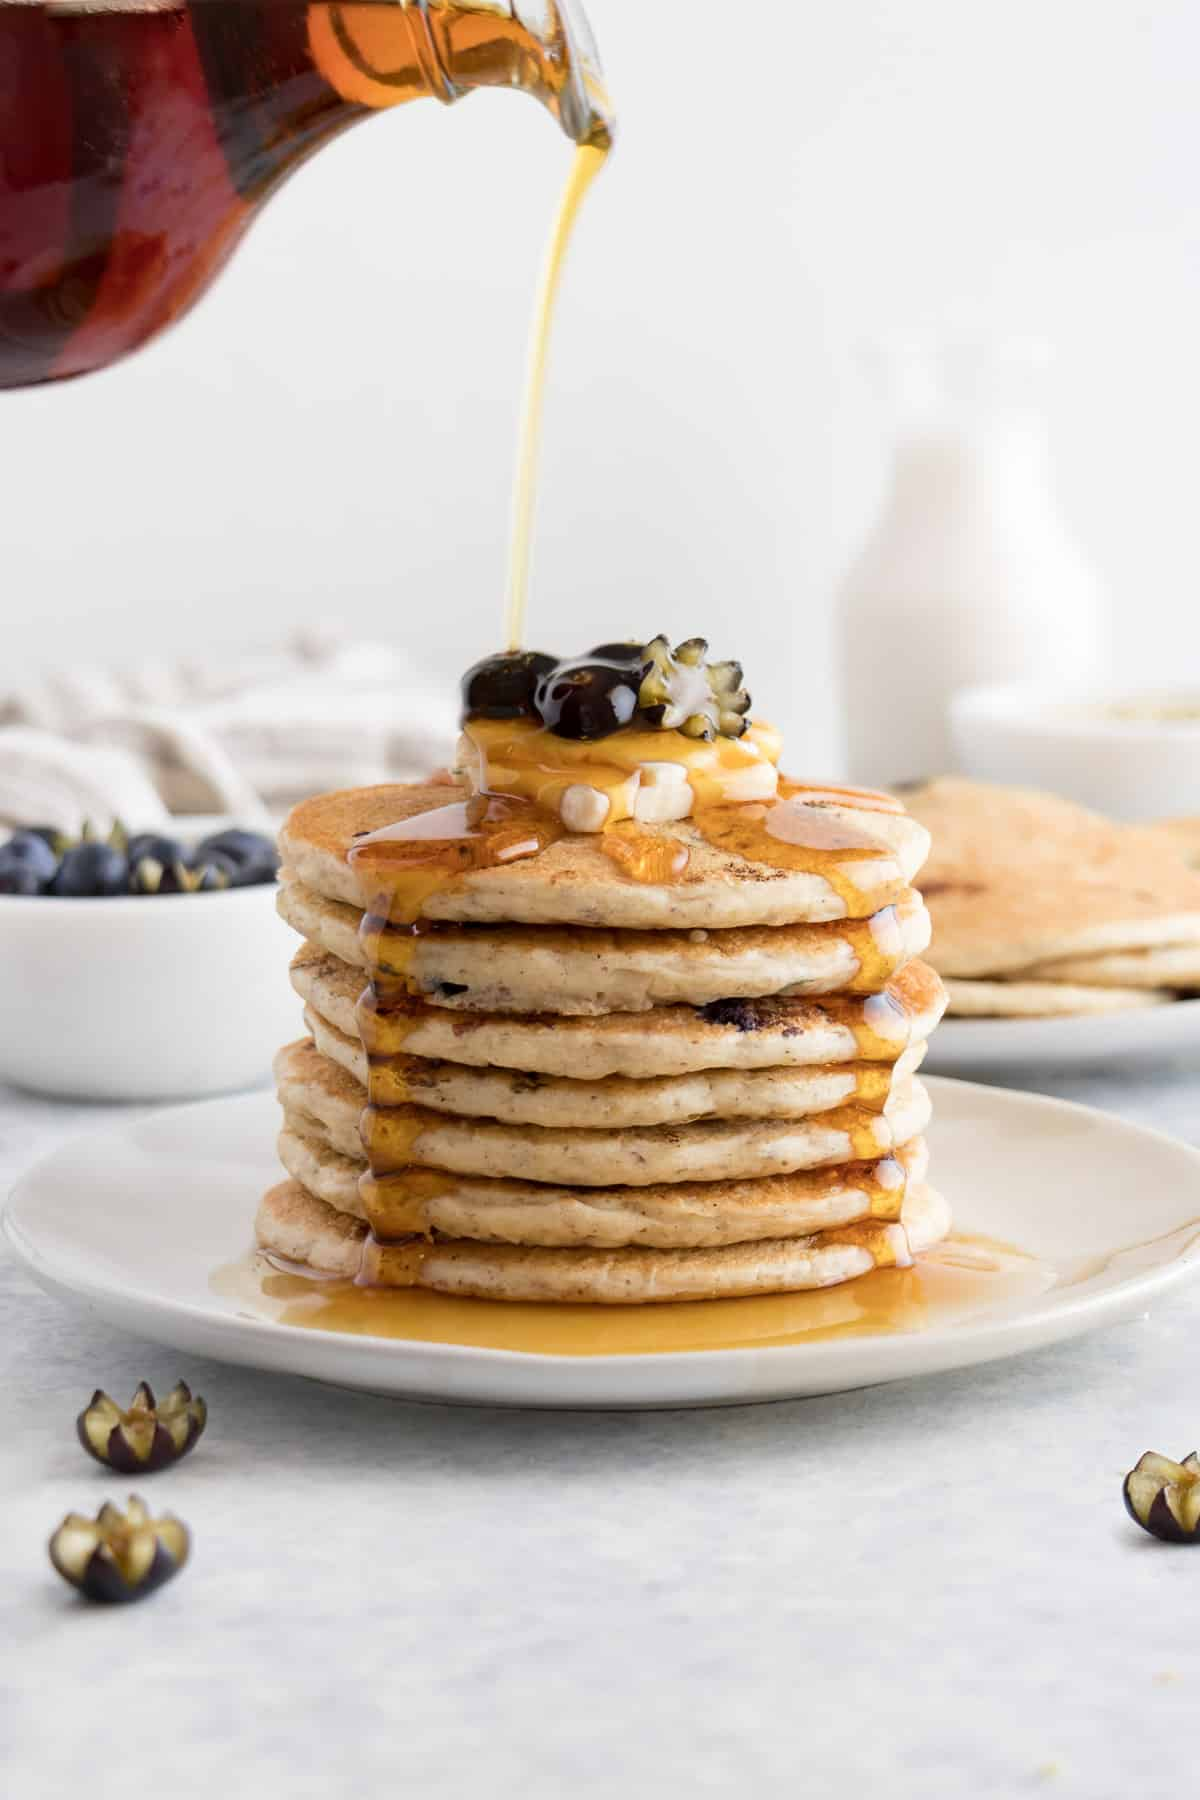 pouring maple syrup over a stack of vegan blueberry pancakes